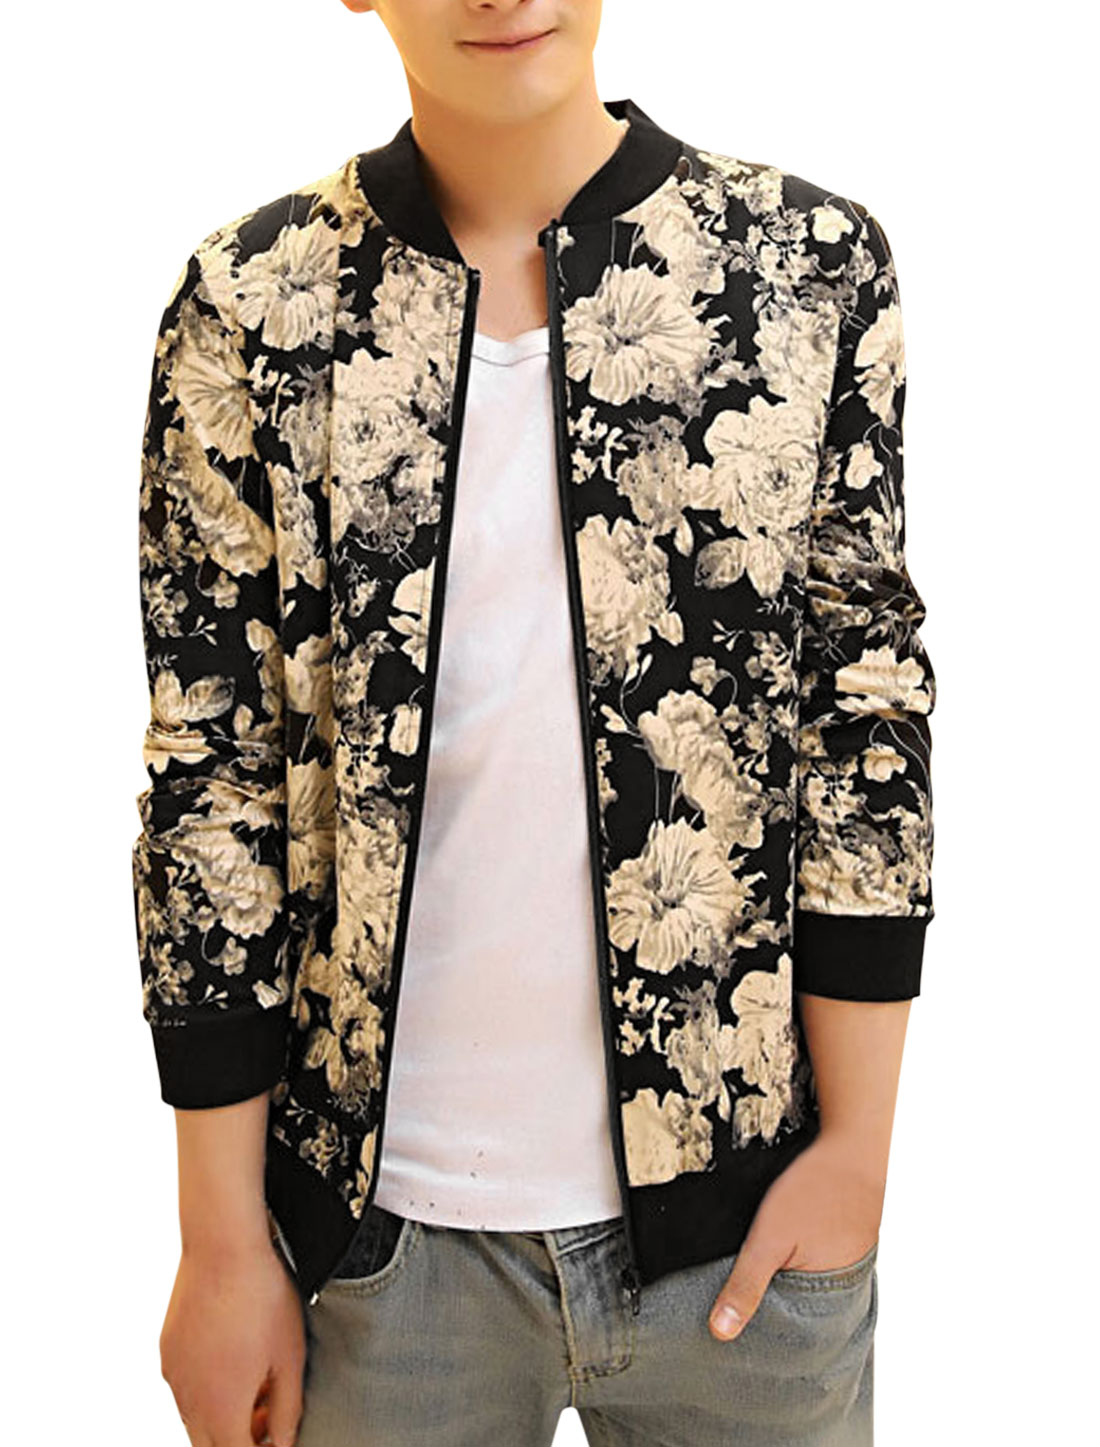 Men Rib Knit Collar Zip Up Flower Pattern Casual Jacket Black Beige S